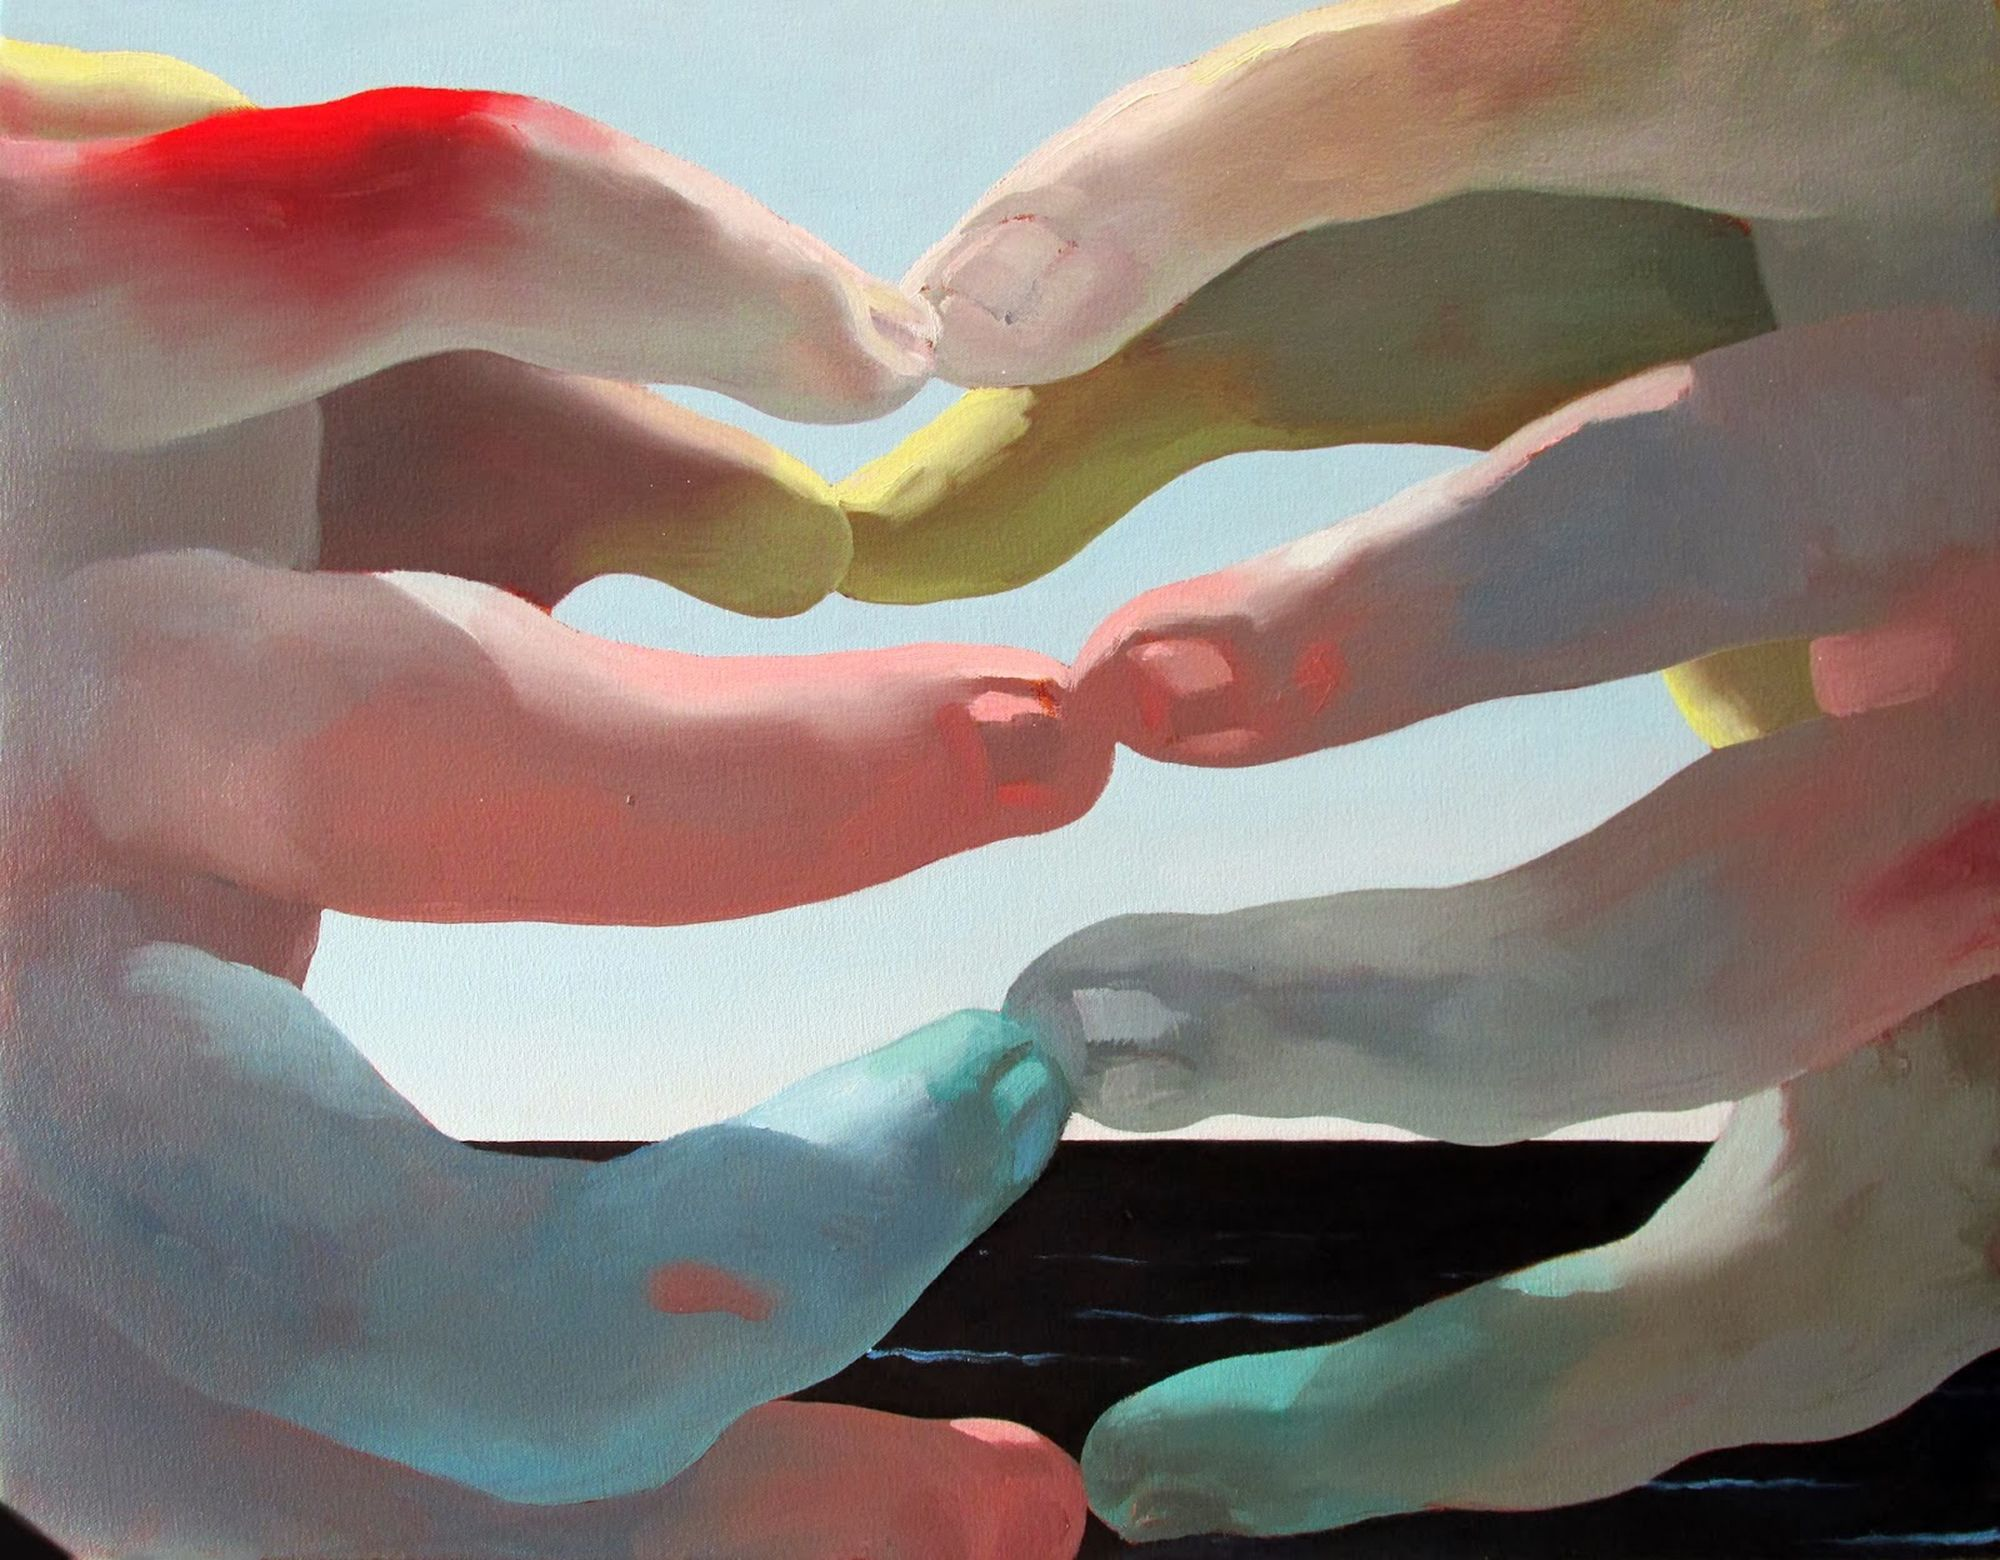 surreal painting, hands